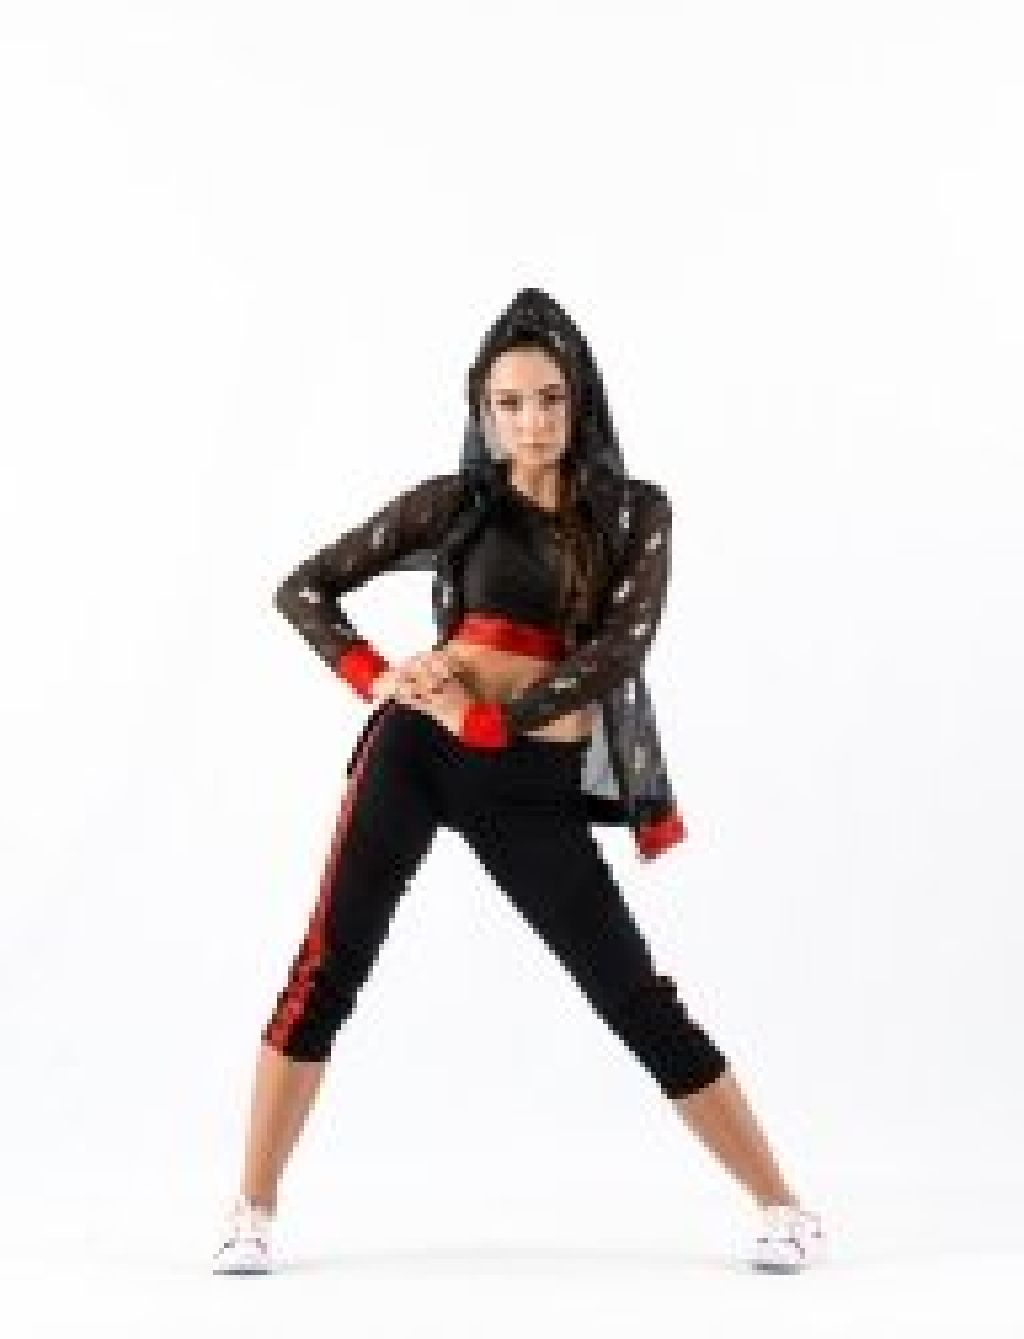 608bc8d07 Get Specially Customized Dance Team Warm Up Jackets from Limelight ...